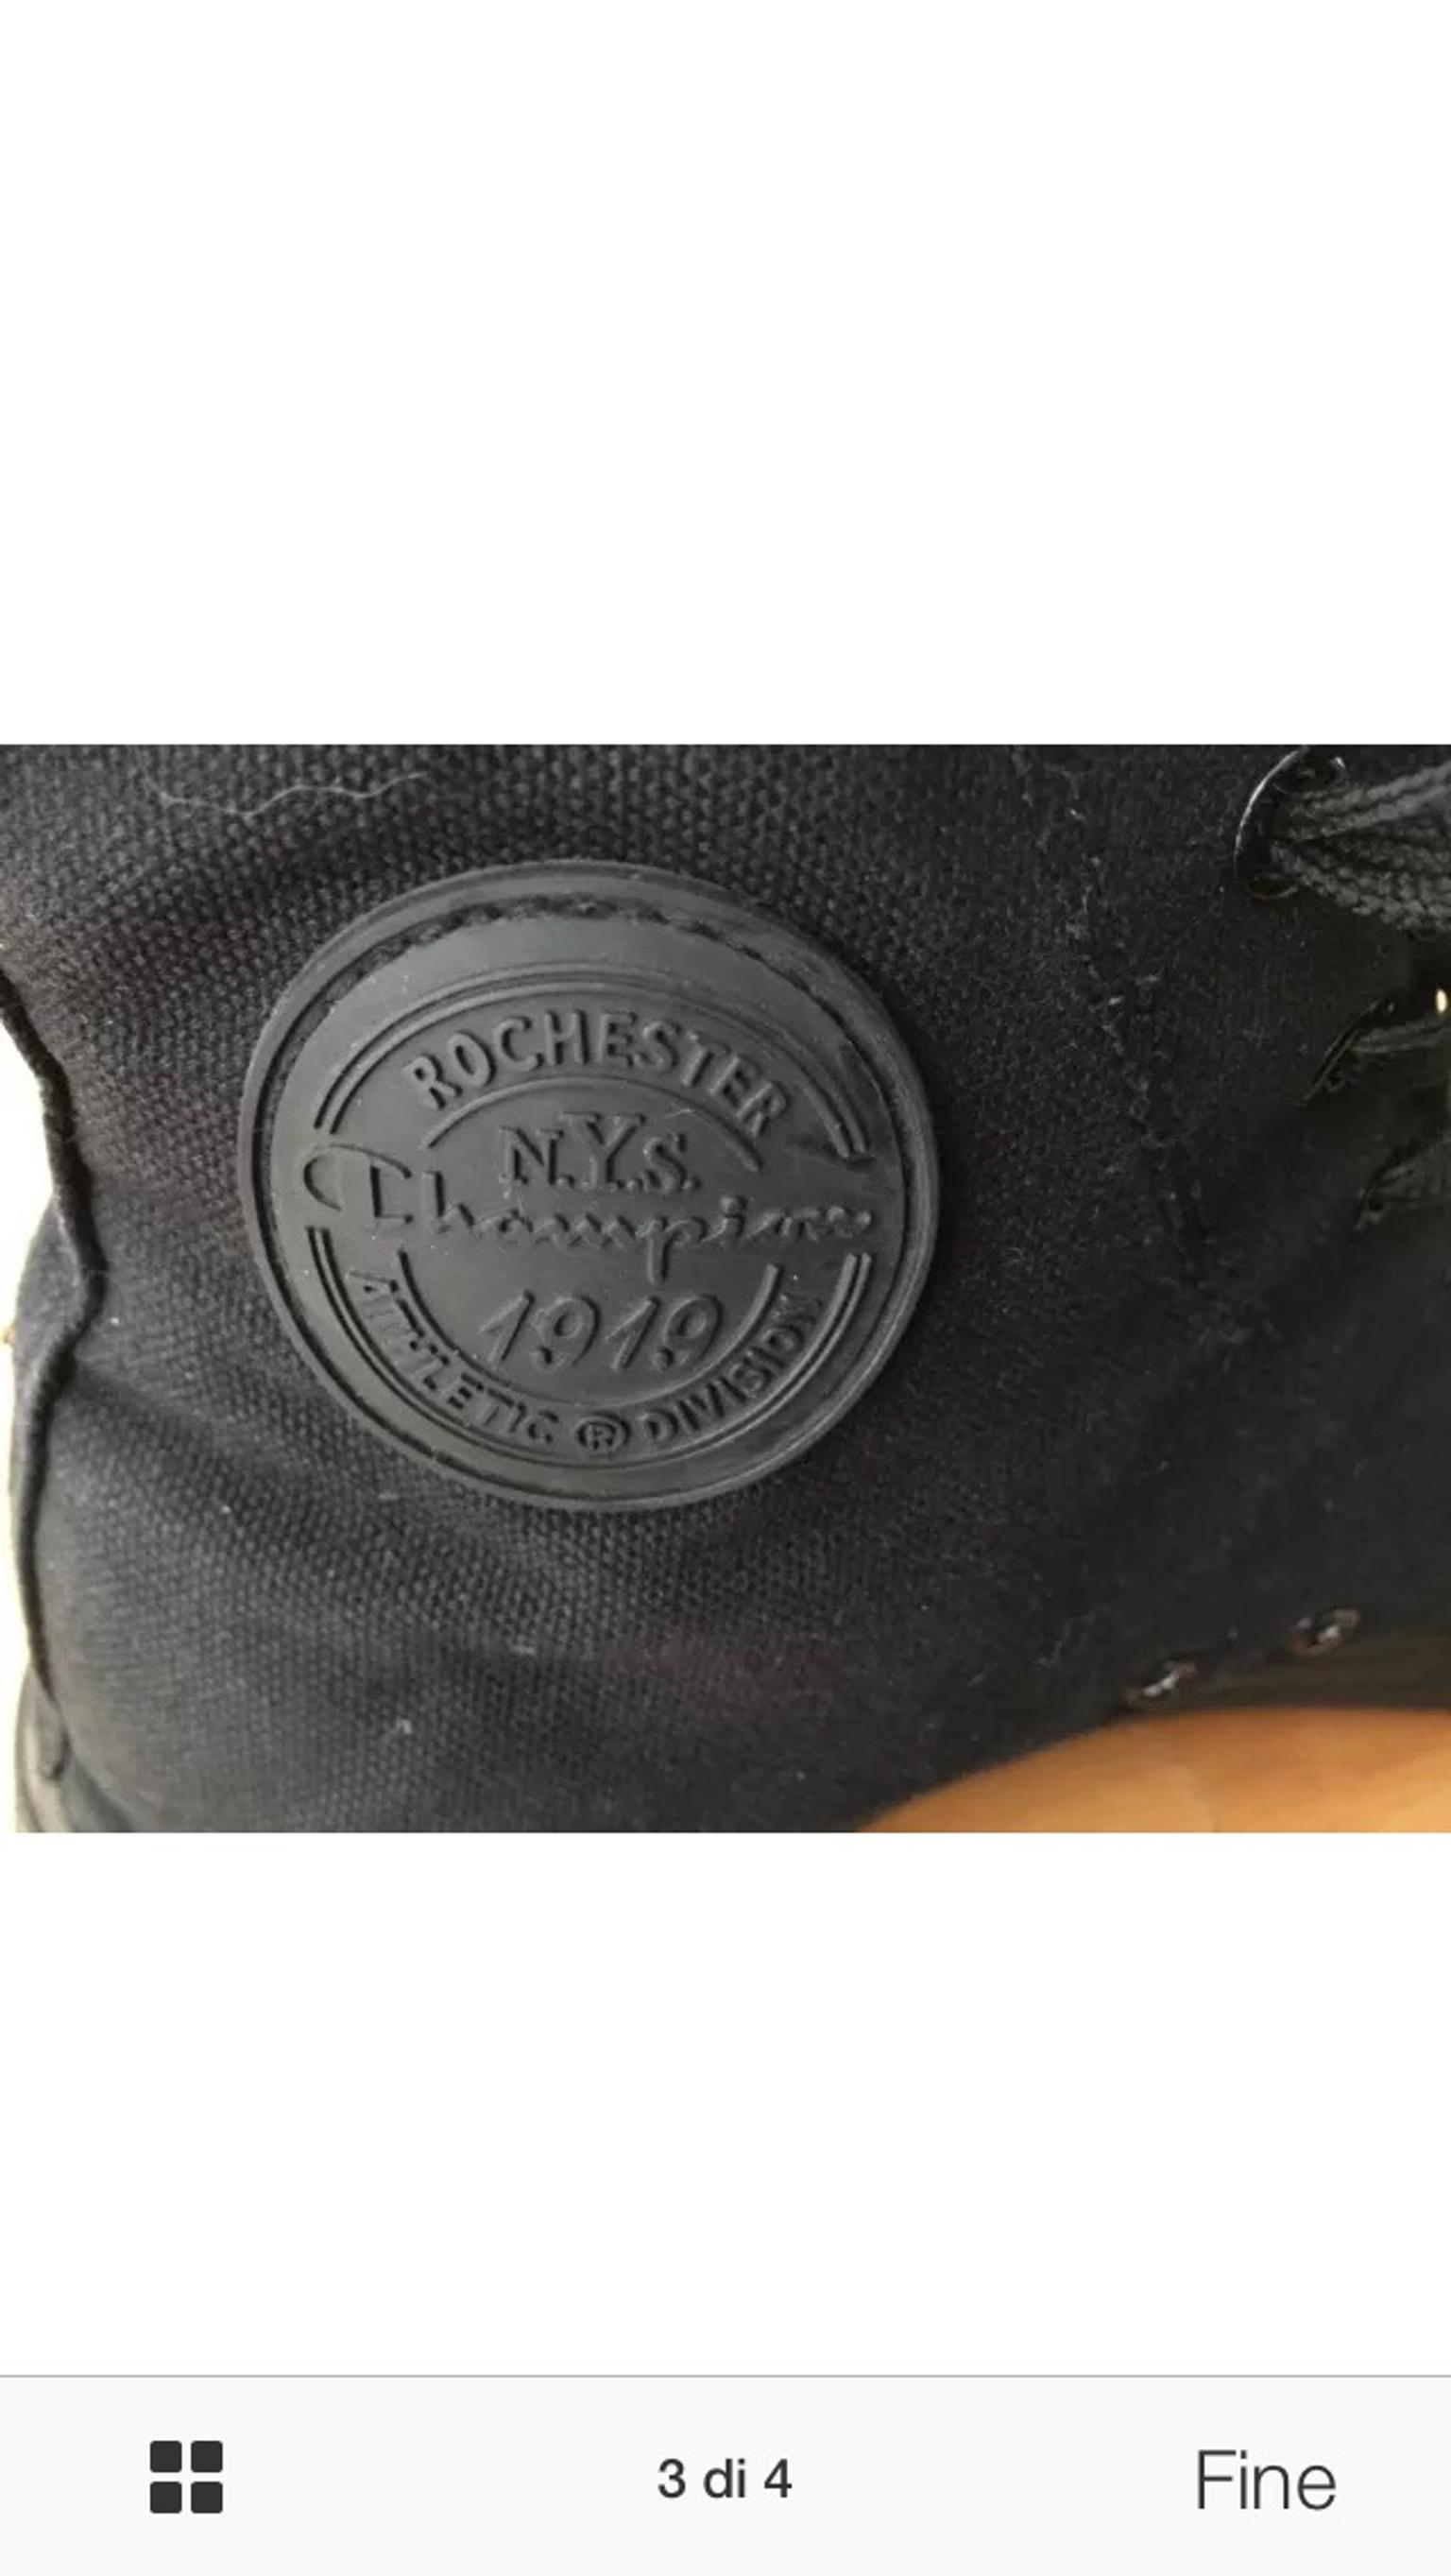 11cbacd171a1 SCARPE CHAMPION TIPO CONVERSE 41.5 UK 7. in 00155 Roma for €10.00 for sale  - Shpock